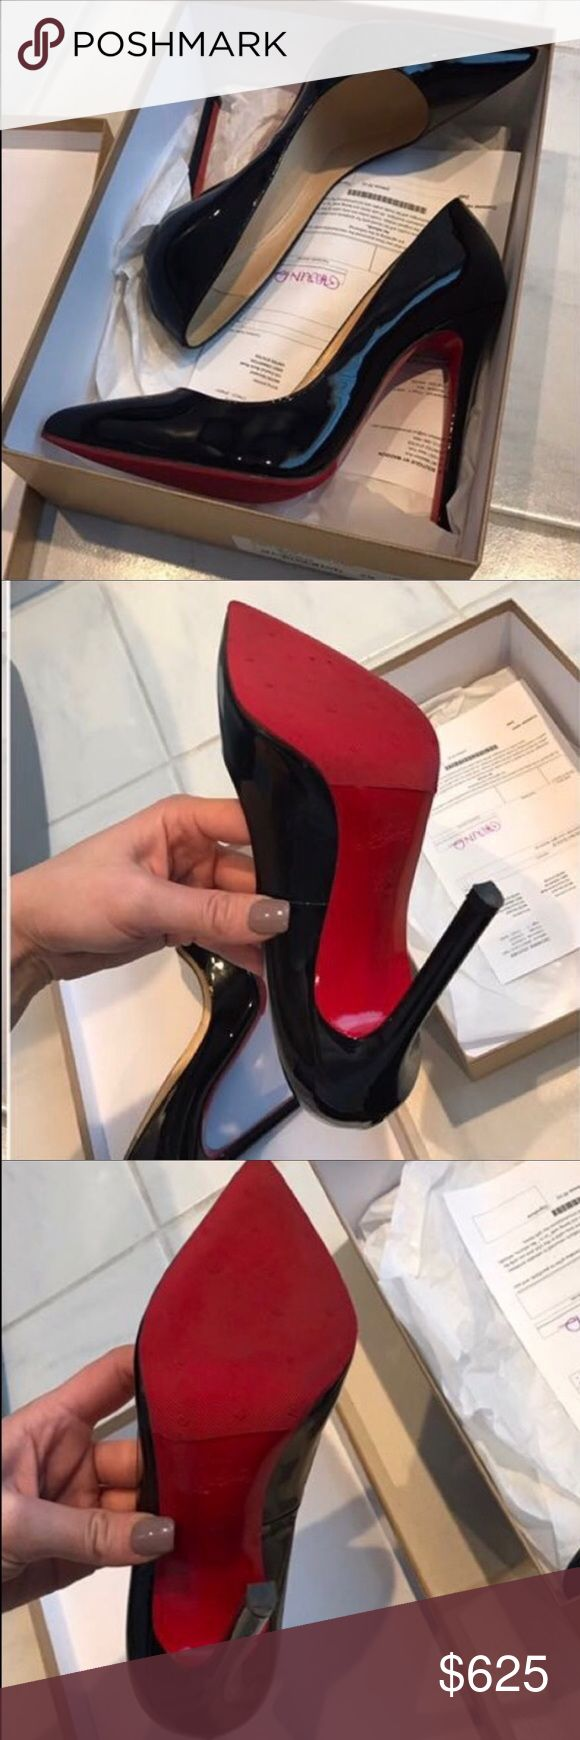 christian louboutin wedges 39 where to get christian louboutin shoes resoled uk